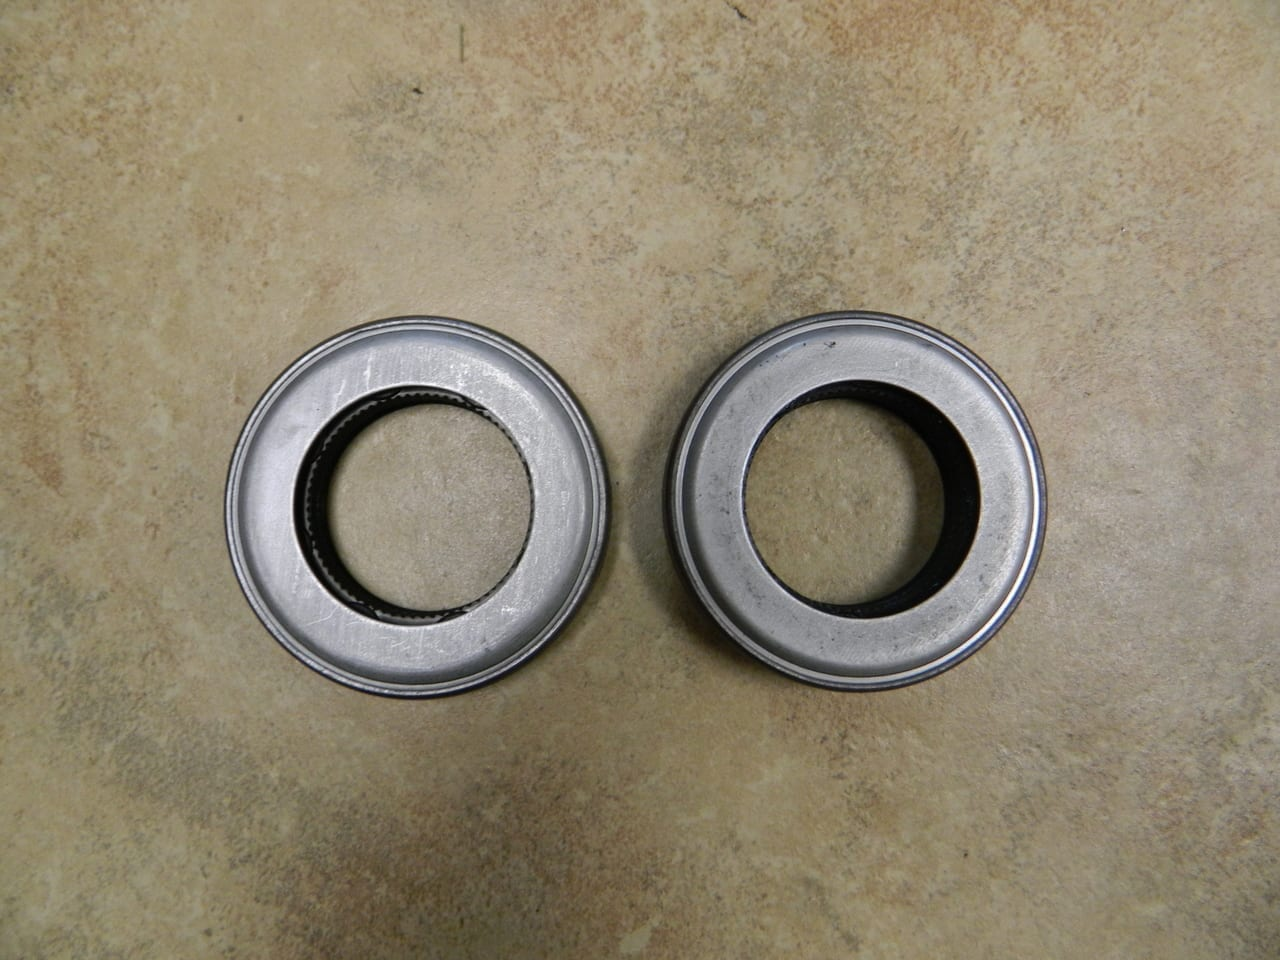 """7.25"""" 4X4 Front Axle Seal Chevy S10 GMC S15 1997-2003 AAM OEM Pair 7.25 IFS"""